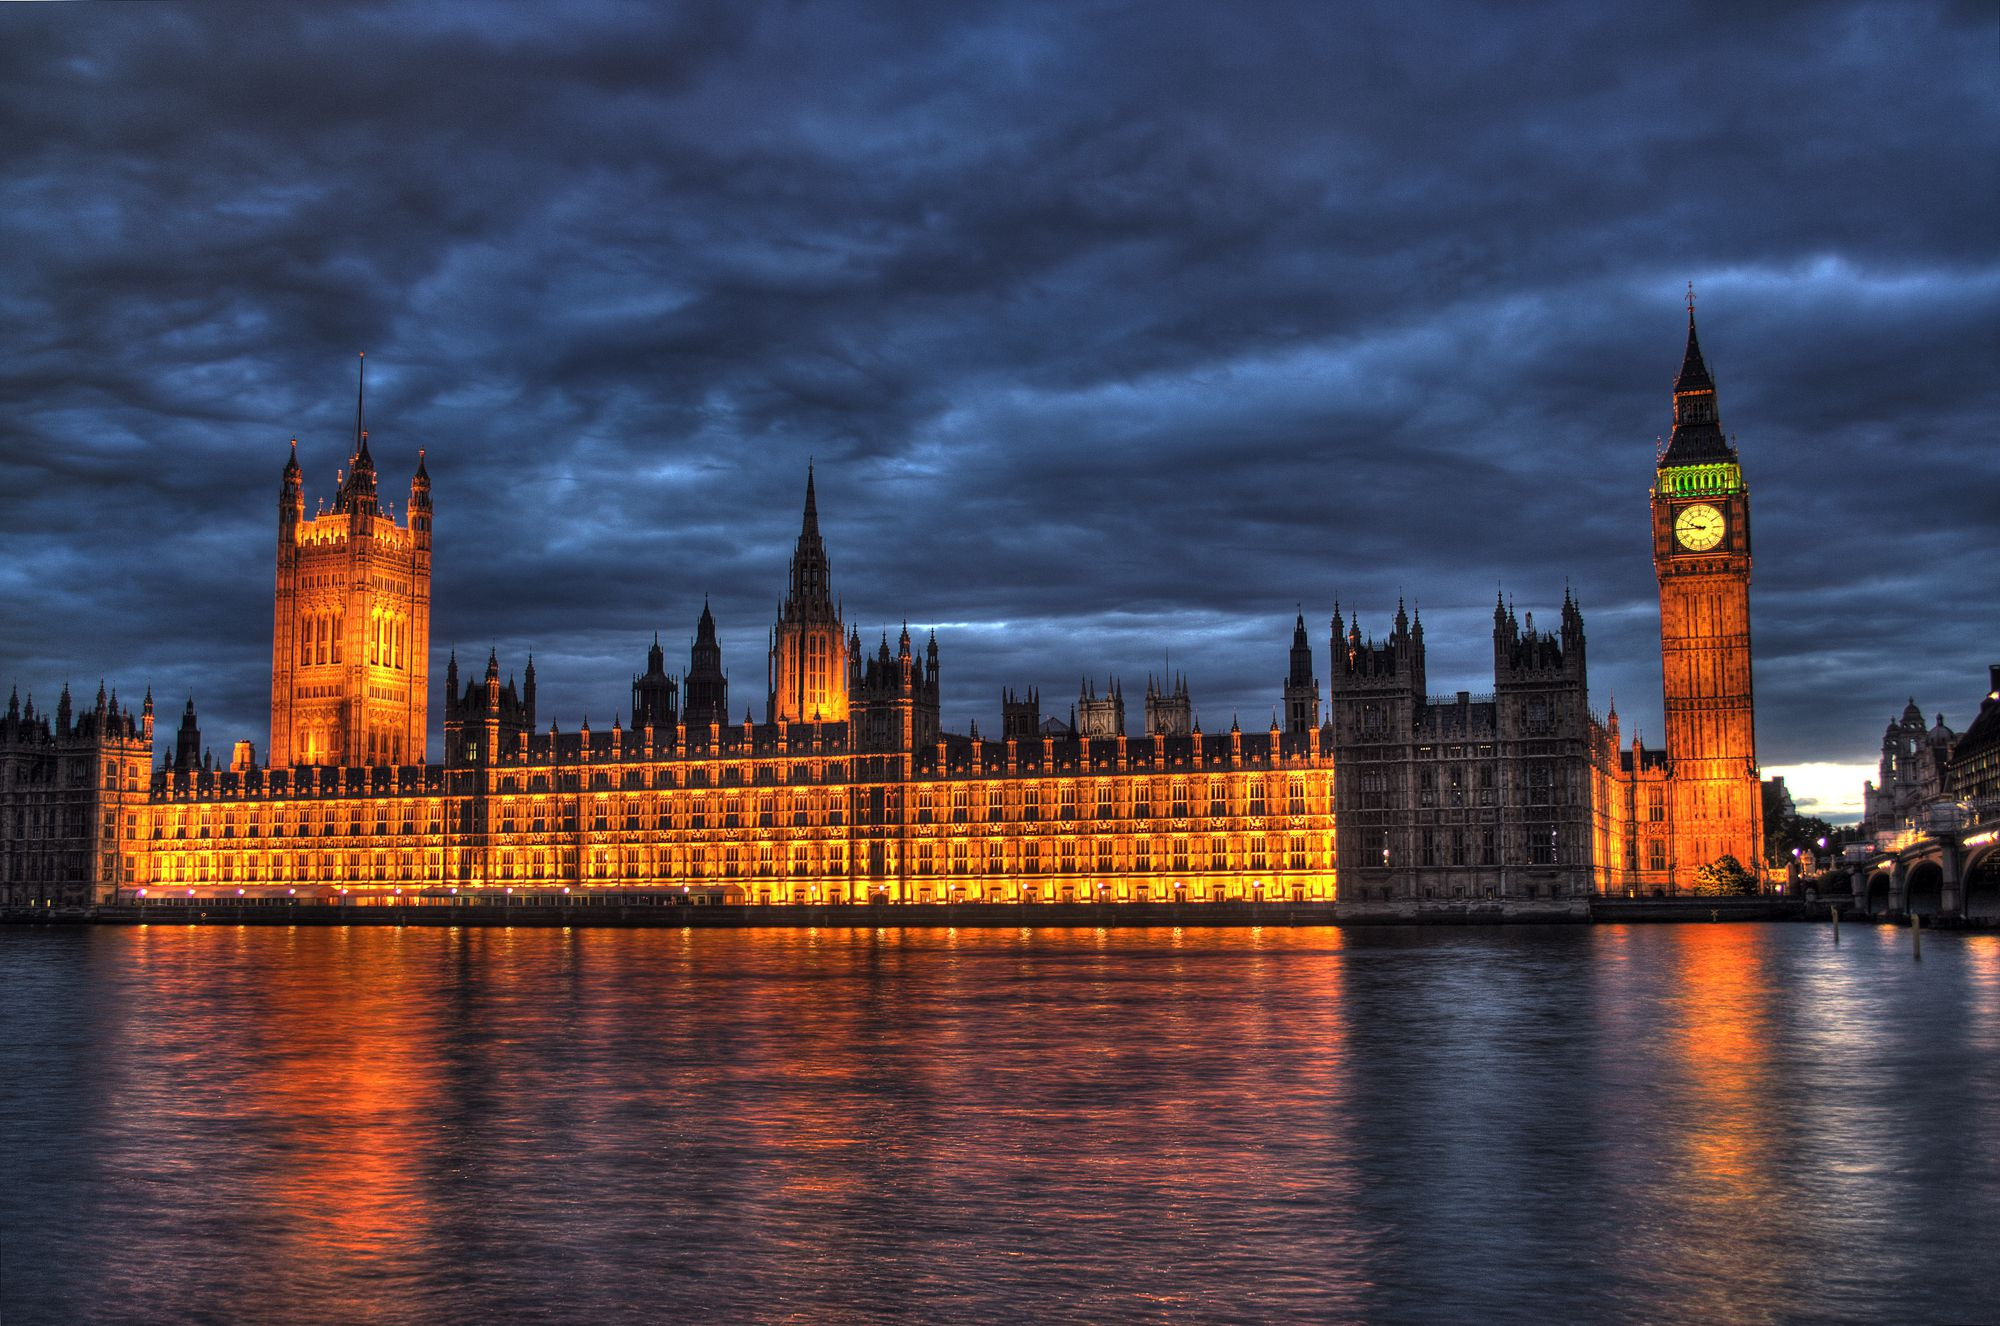 101 FREE Things To Do In London - The Best Guide To Seeing All The Major Attractions (And More) ABSOLUTELY FREE!!! (5)